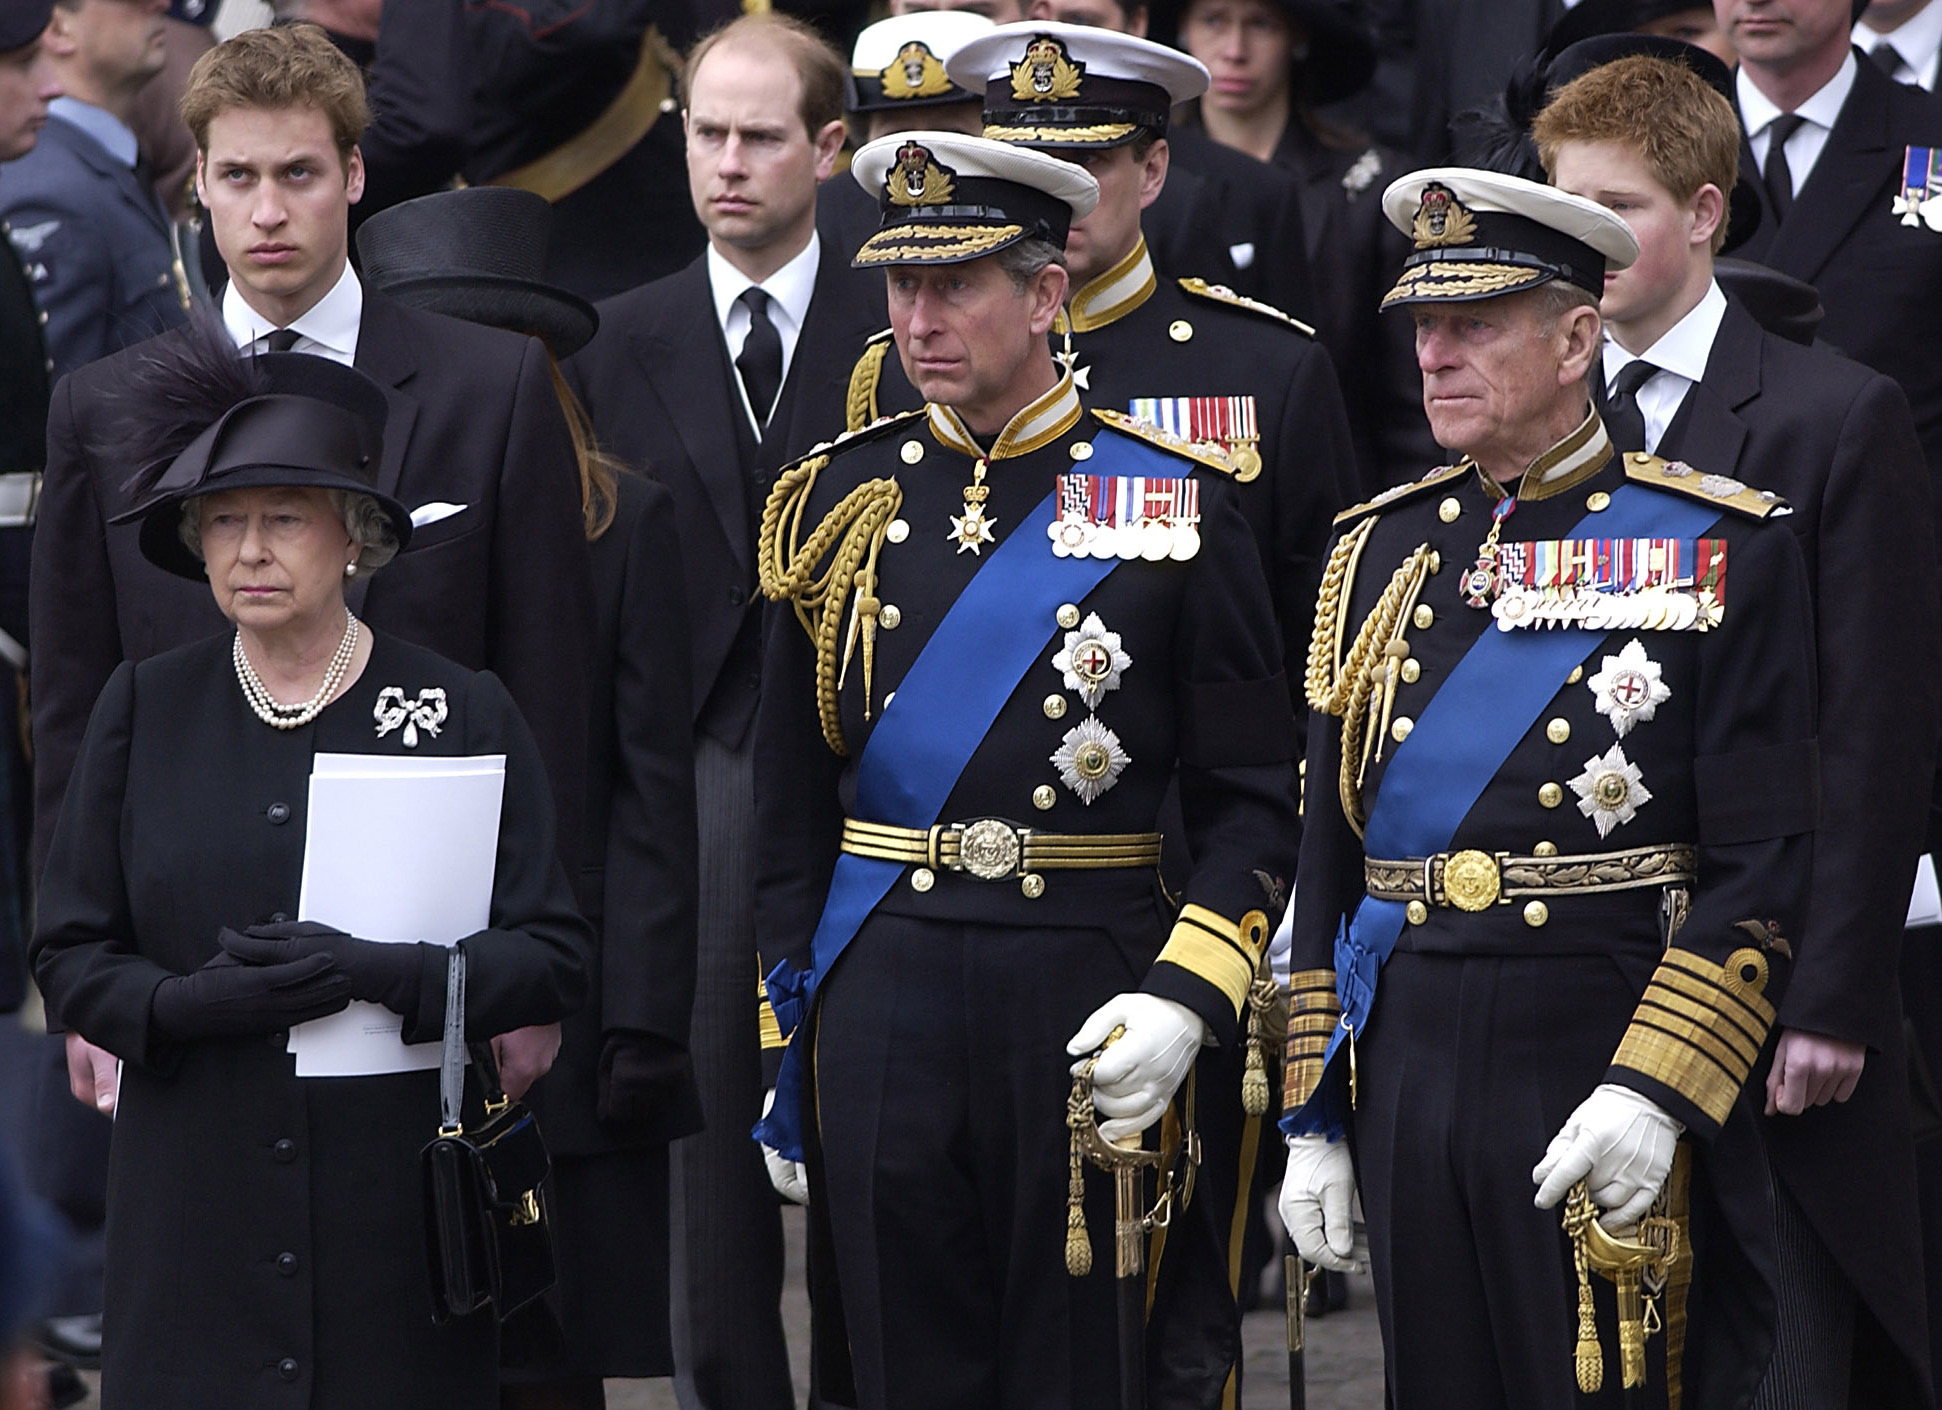 Queen Elizabeth Gave a Moving Speech After the Queen Mother's Death, 19 Years Ago